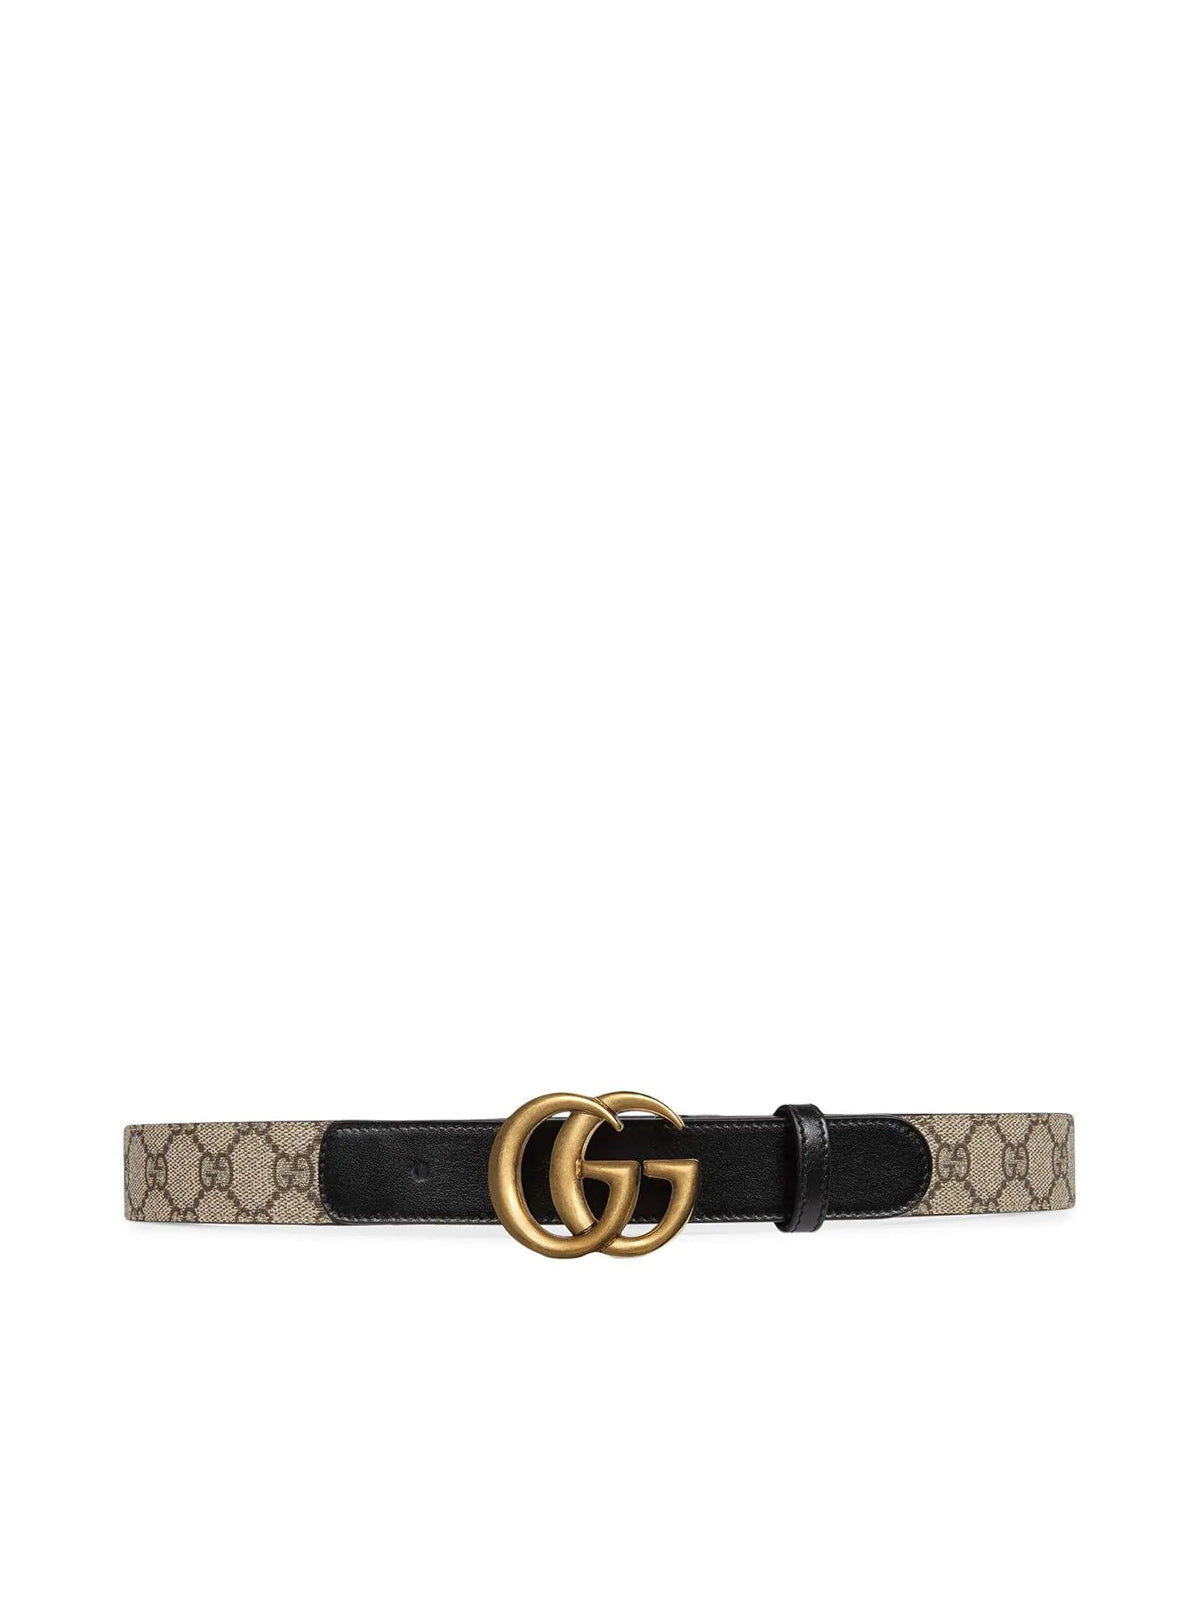 Double G buckle GG belt